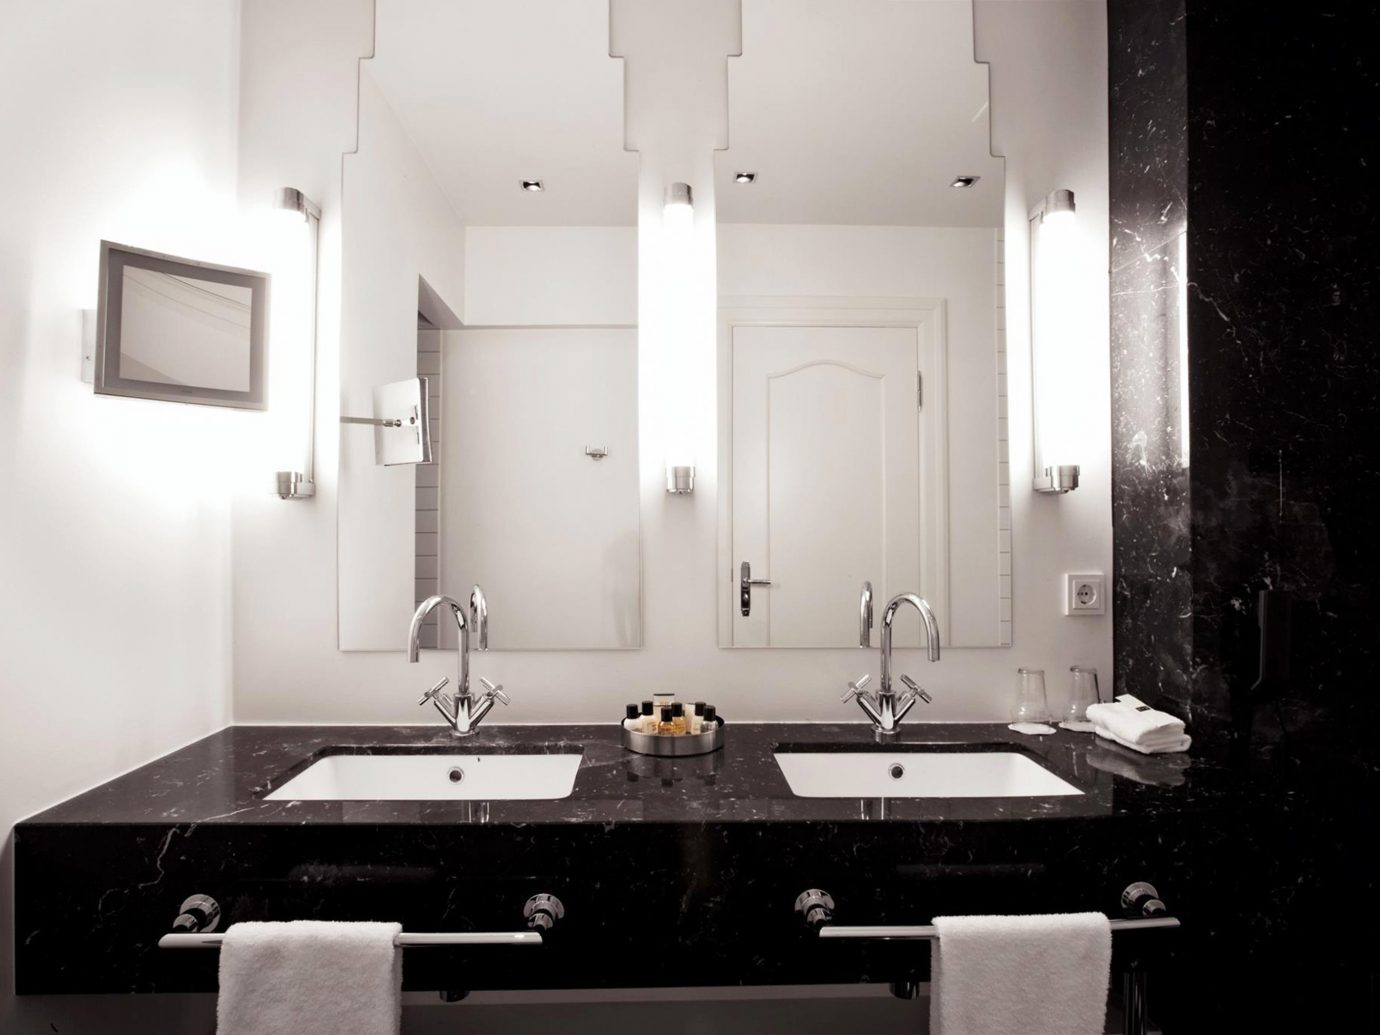 Bath Boutique Boutique Hotels Design Hotels Iceland Modern Reykjavík wall bathroom indoor white room mirror house sink home floor interior design lighting plumbing fixture estate toilet